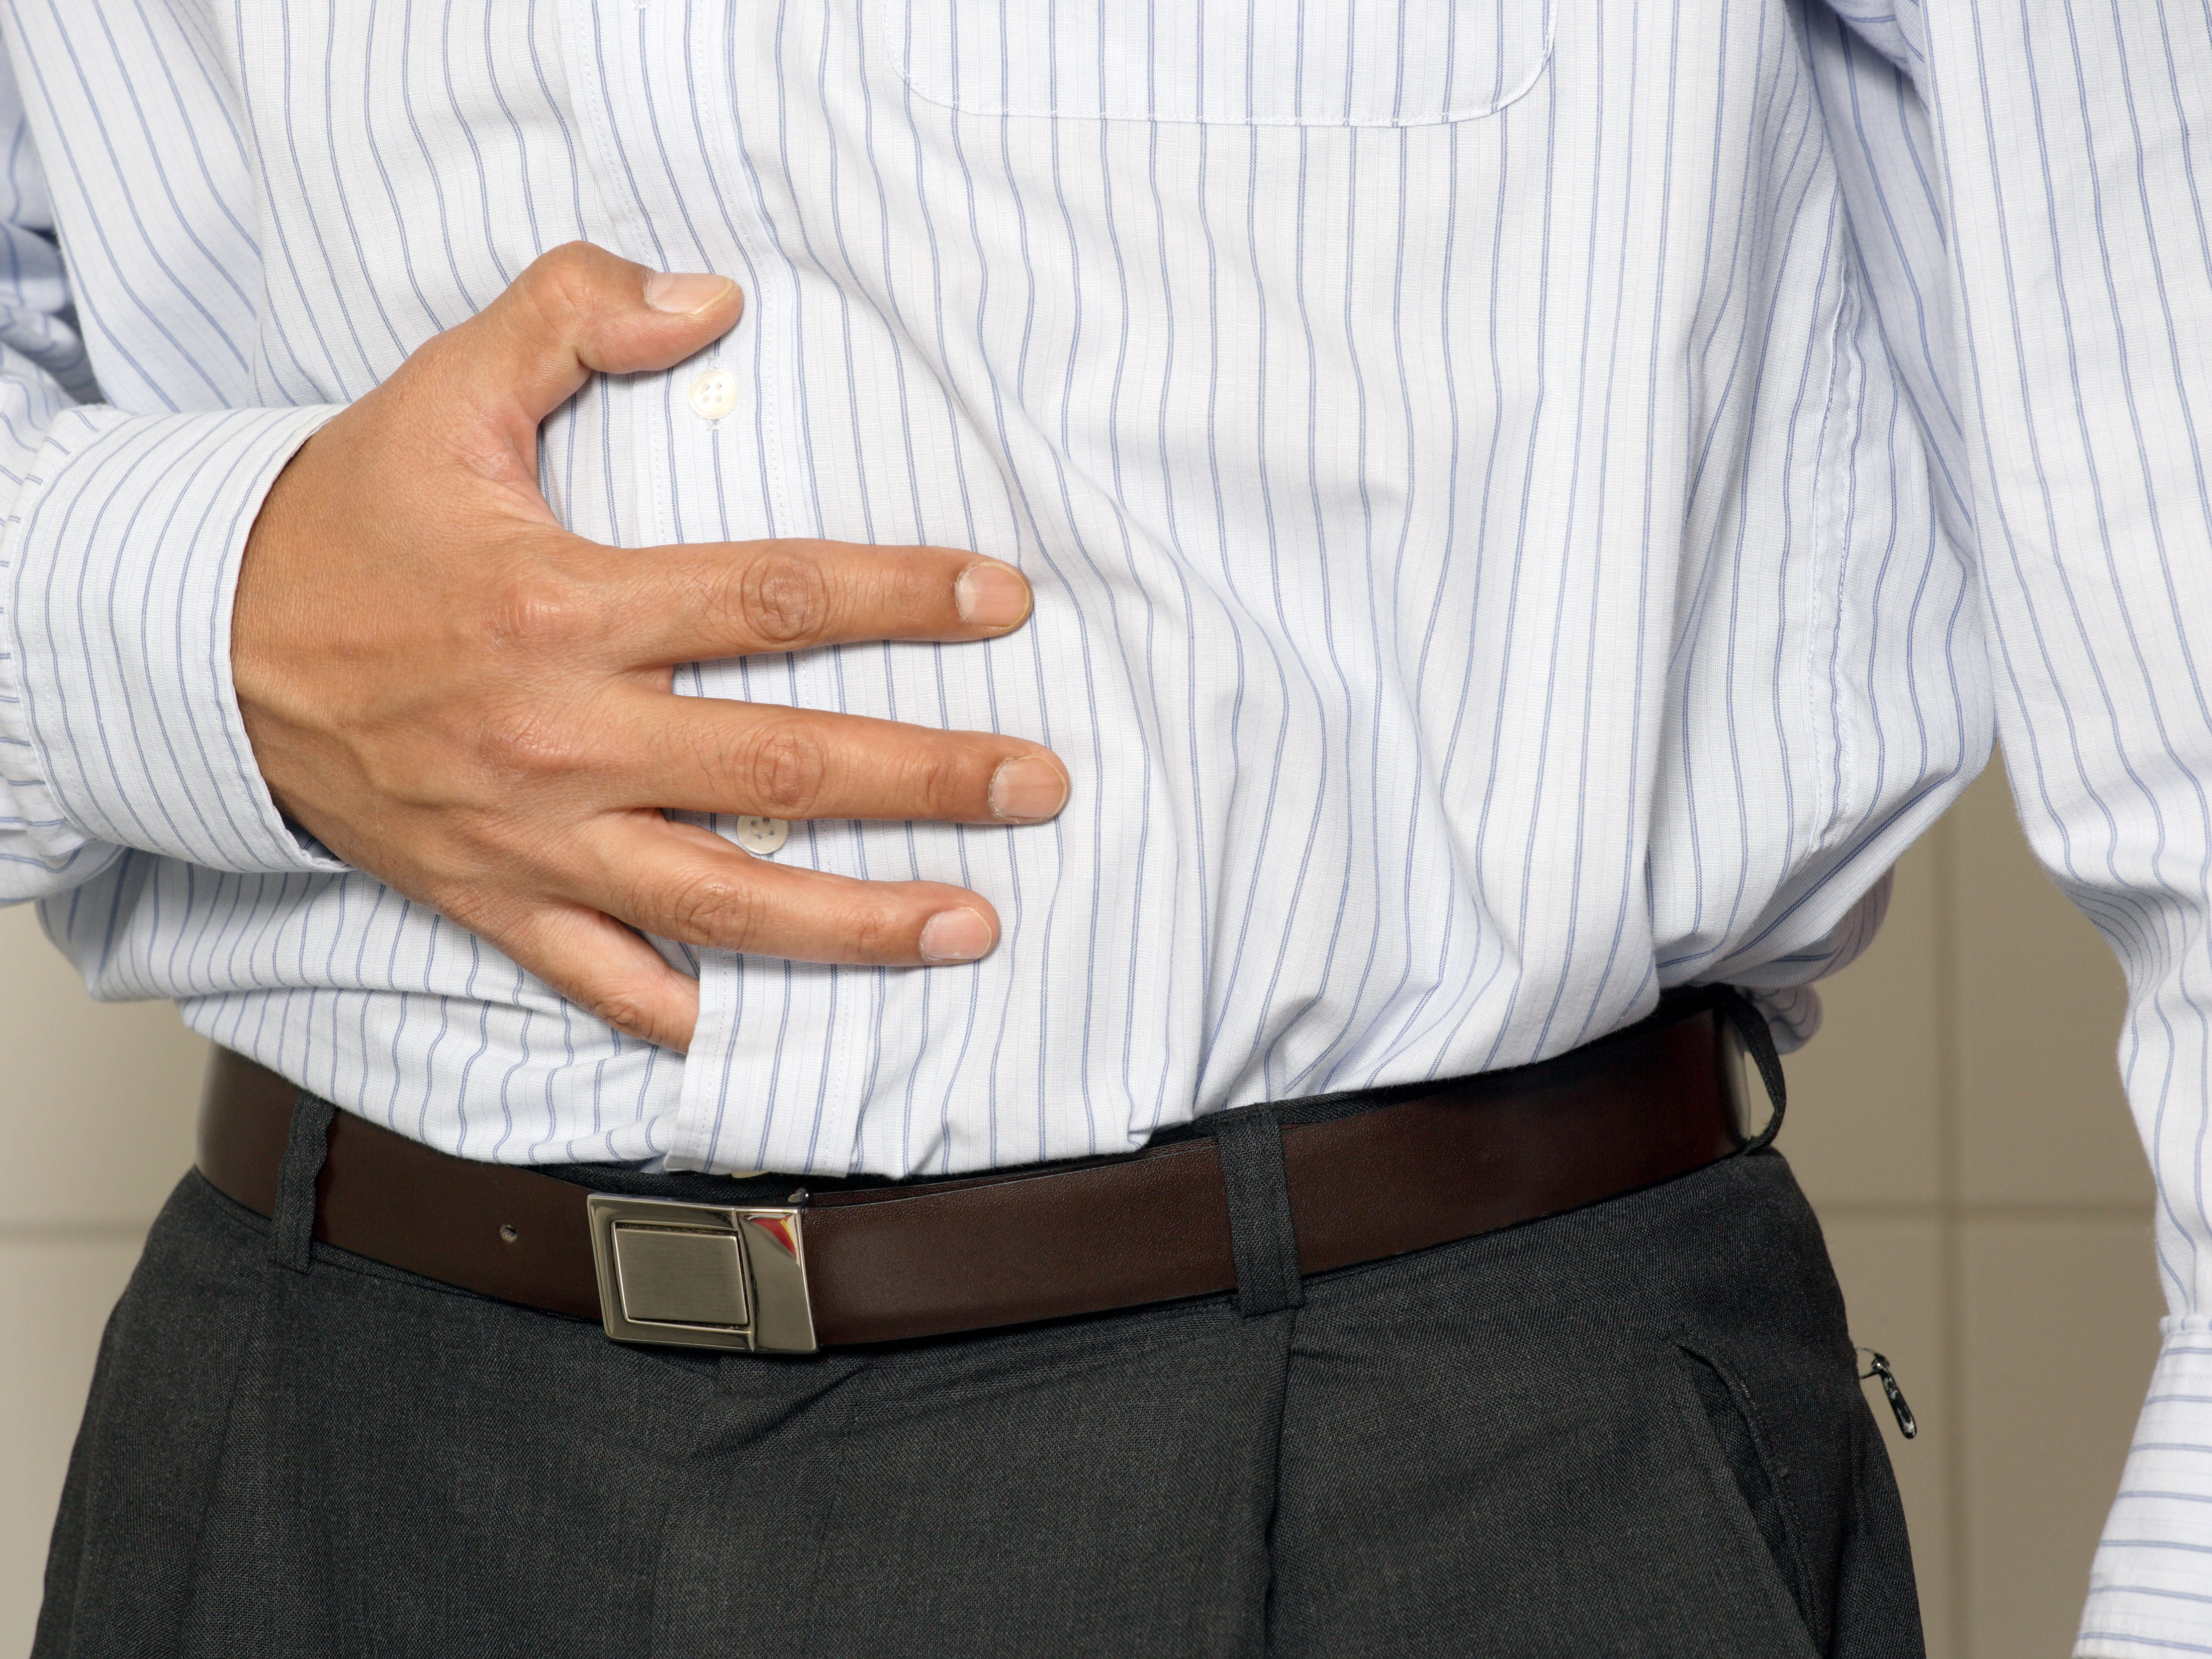 What happens if you eat too many Tums?